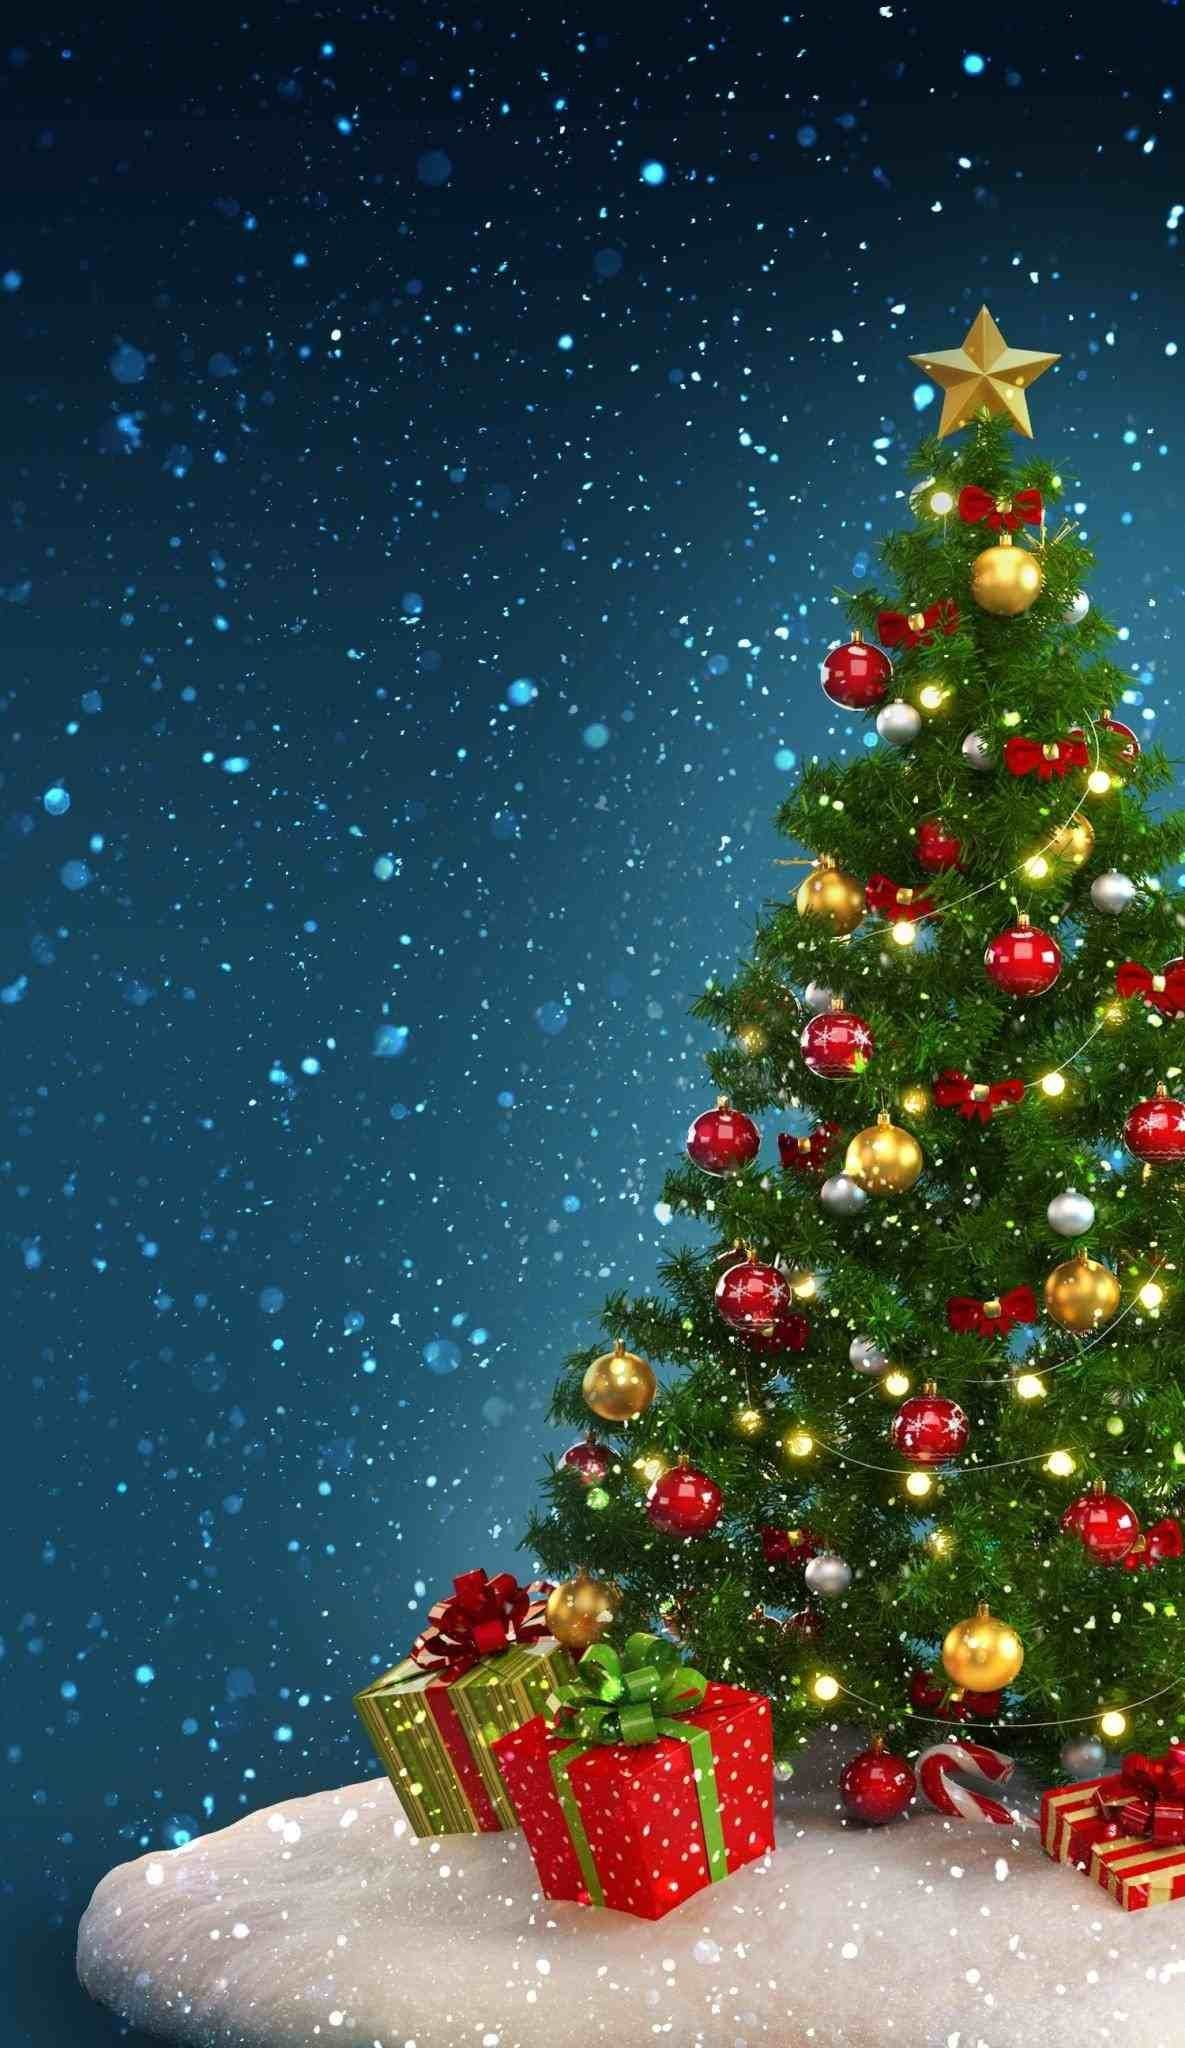 Christmas Tree Background (50+ images)